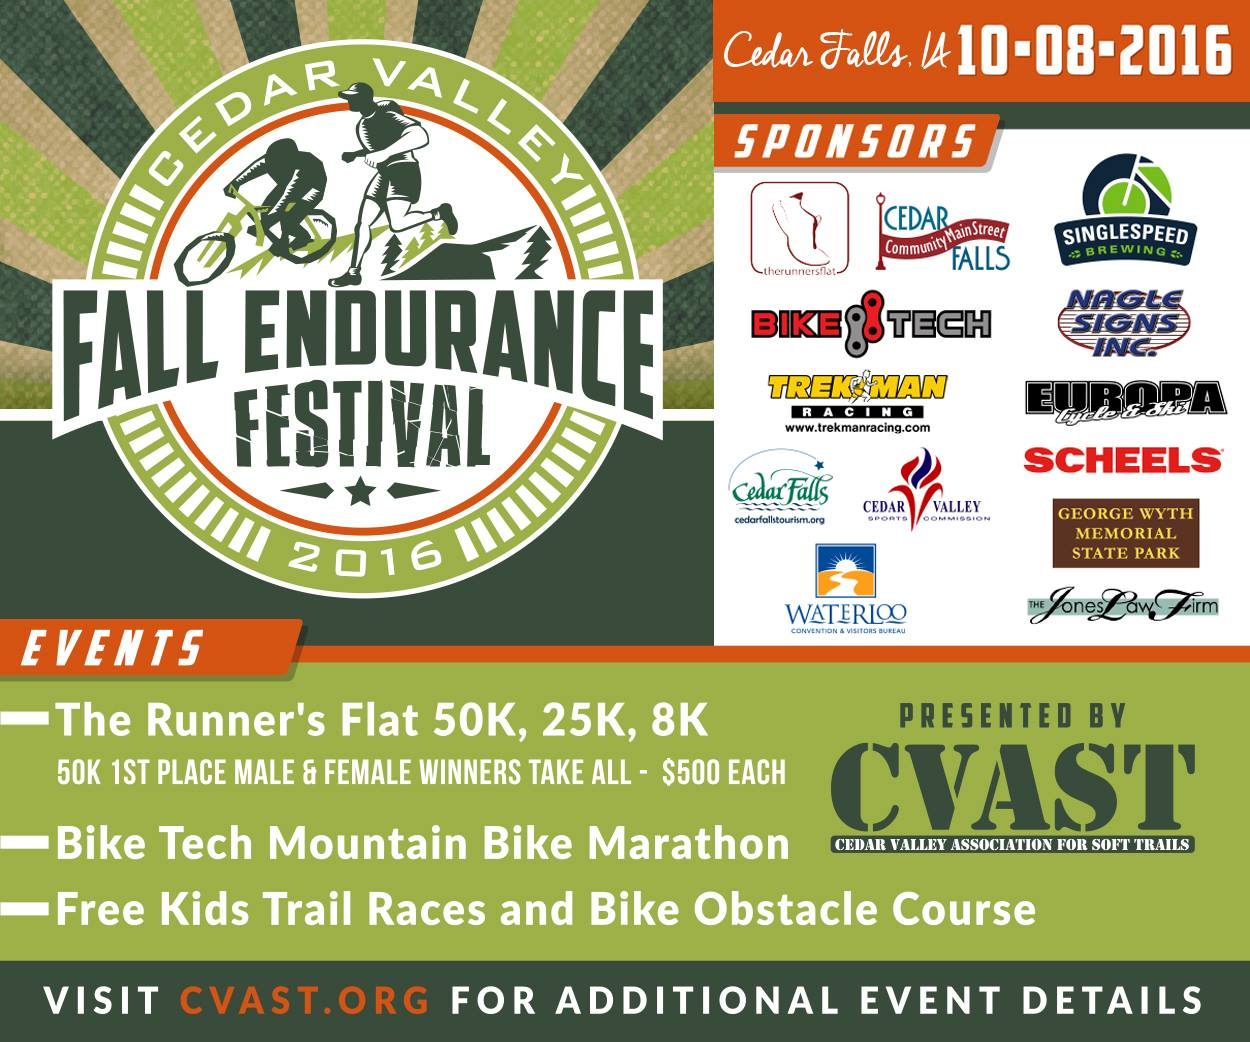 Cedar Valley Endurance Festival